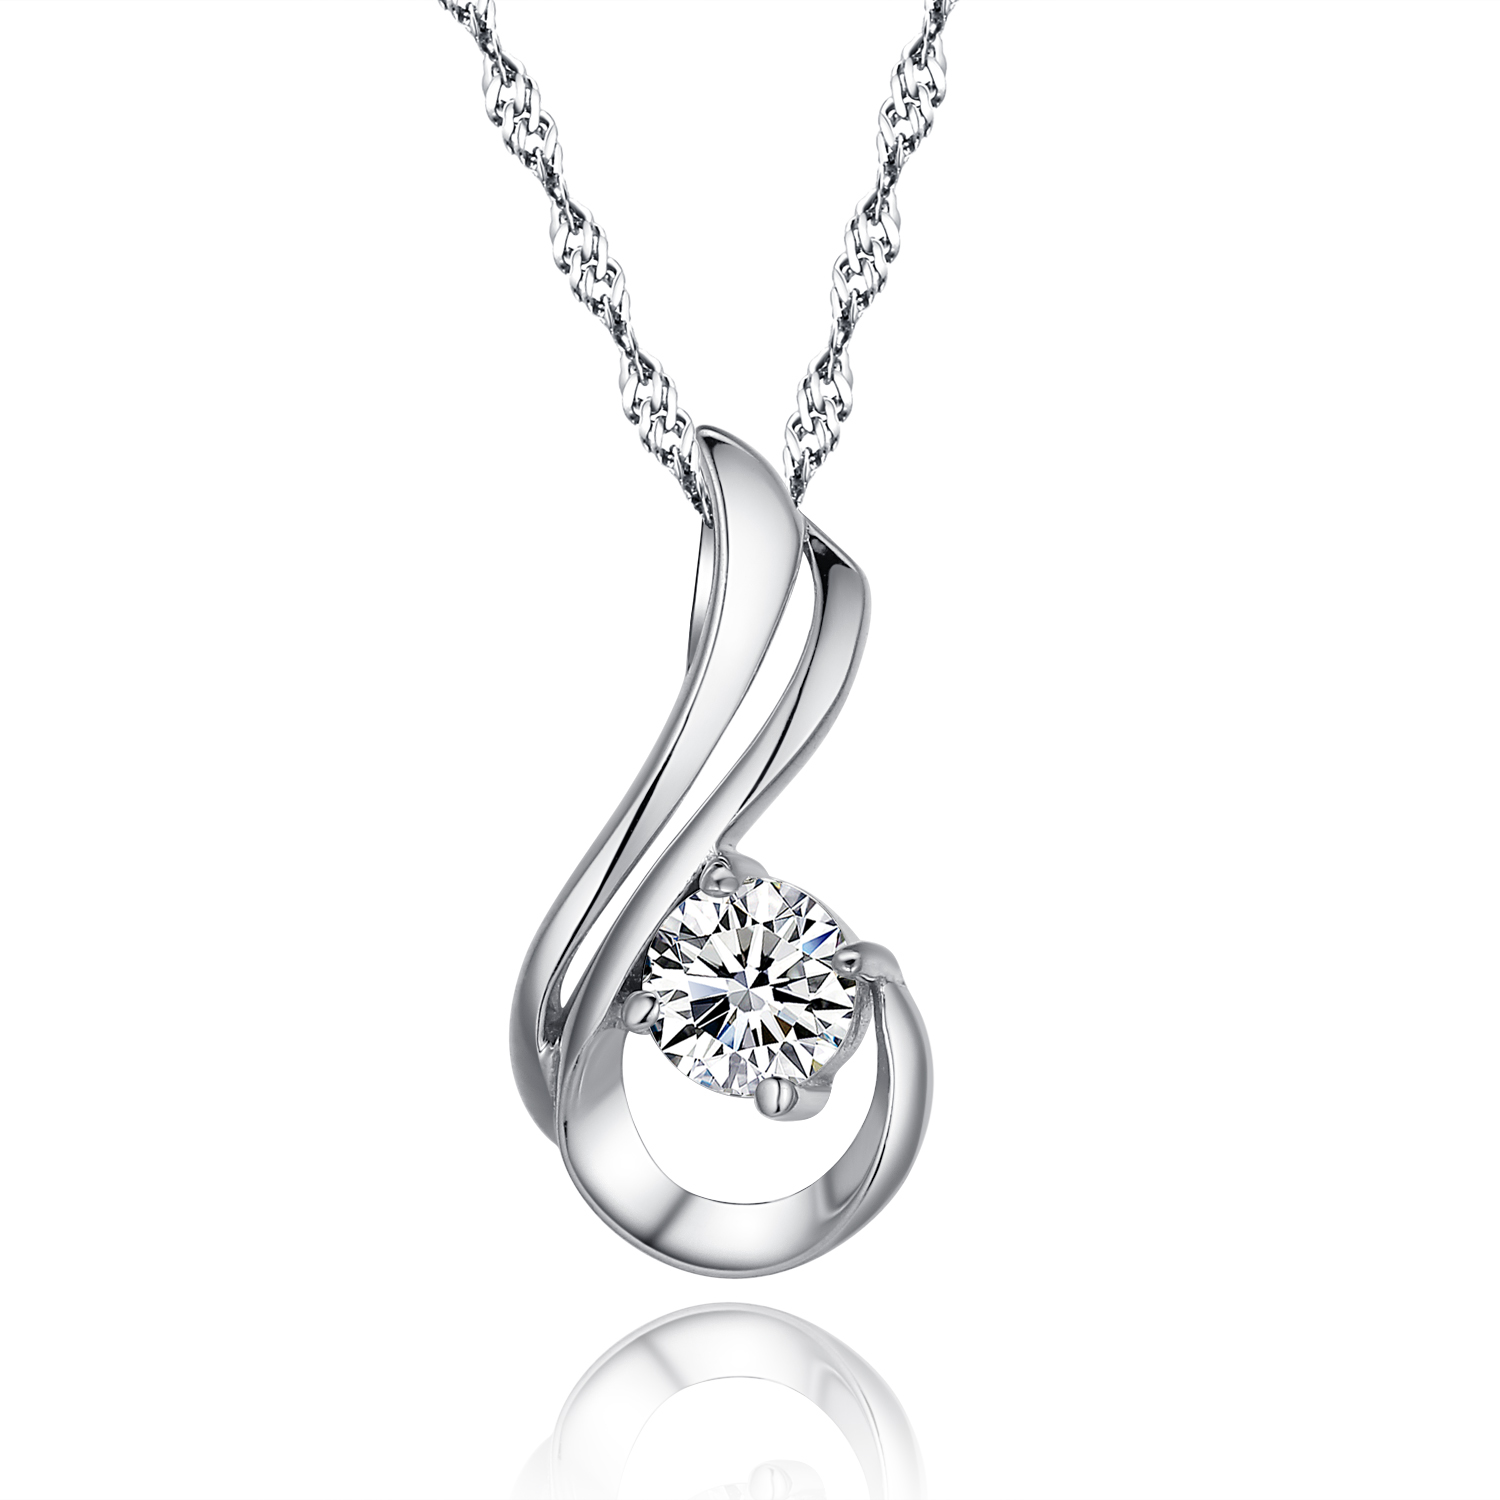 Genuine 100 925 sterling silver pendant necklace paved cubic love at first sight 925 sterling silver paved diamond pendant necklace 20 silver singapore chain with aloadofball Gallery